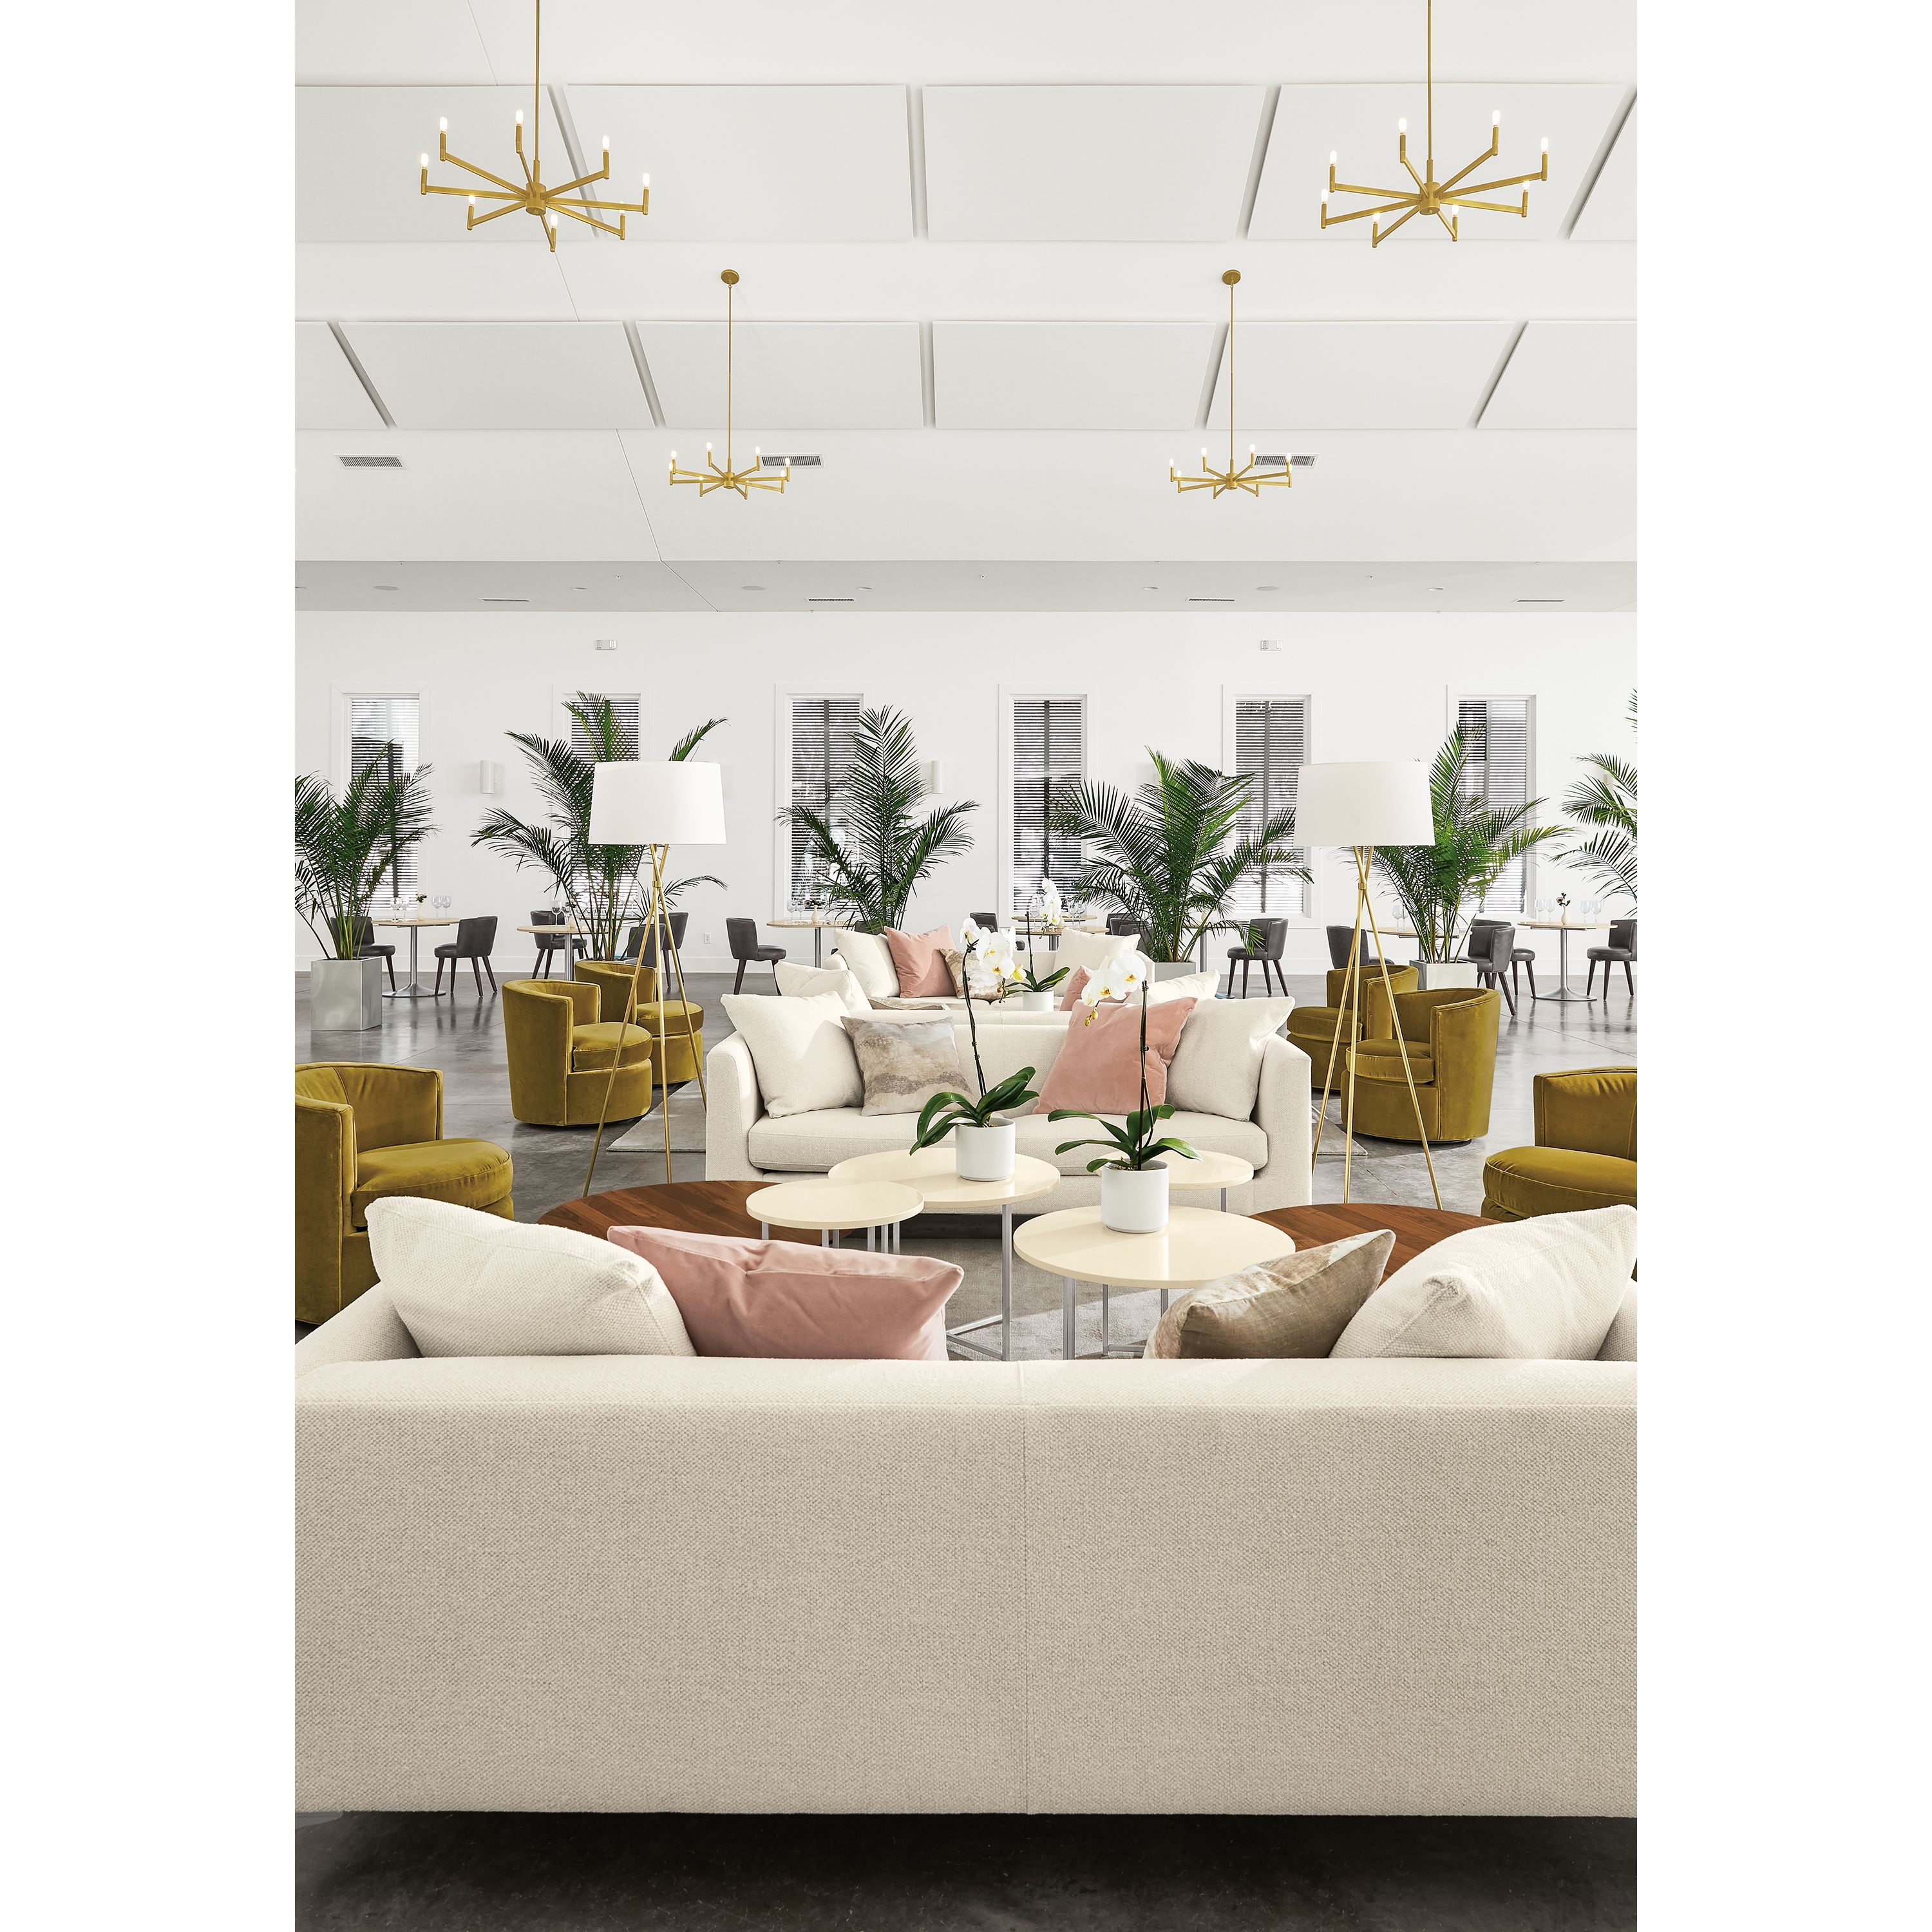 - Room & Board Classic Coffee Tables In Stainless Steel In 2019